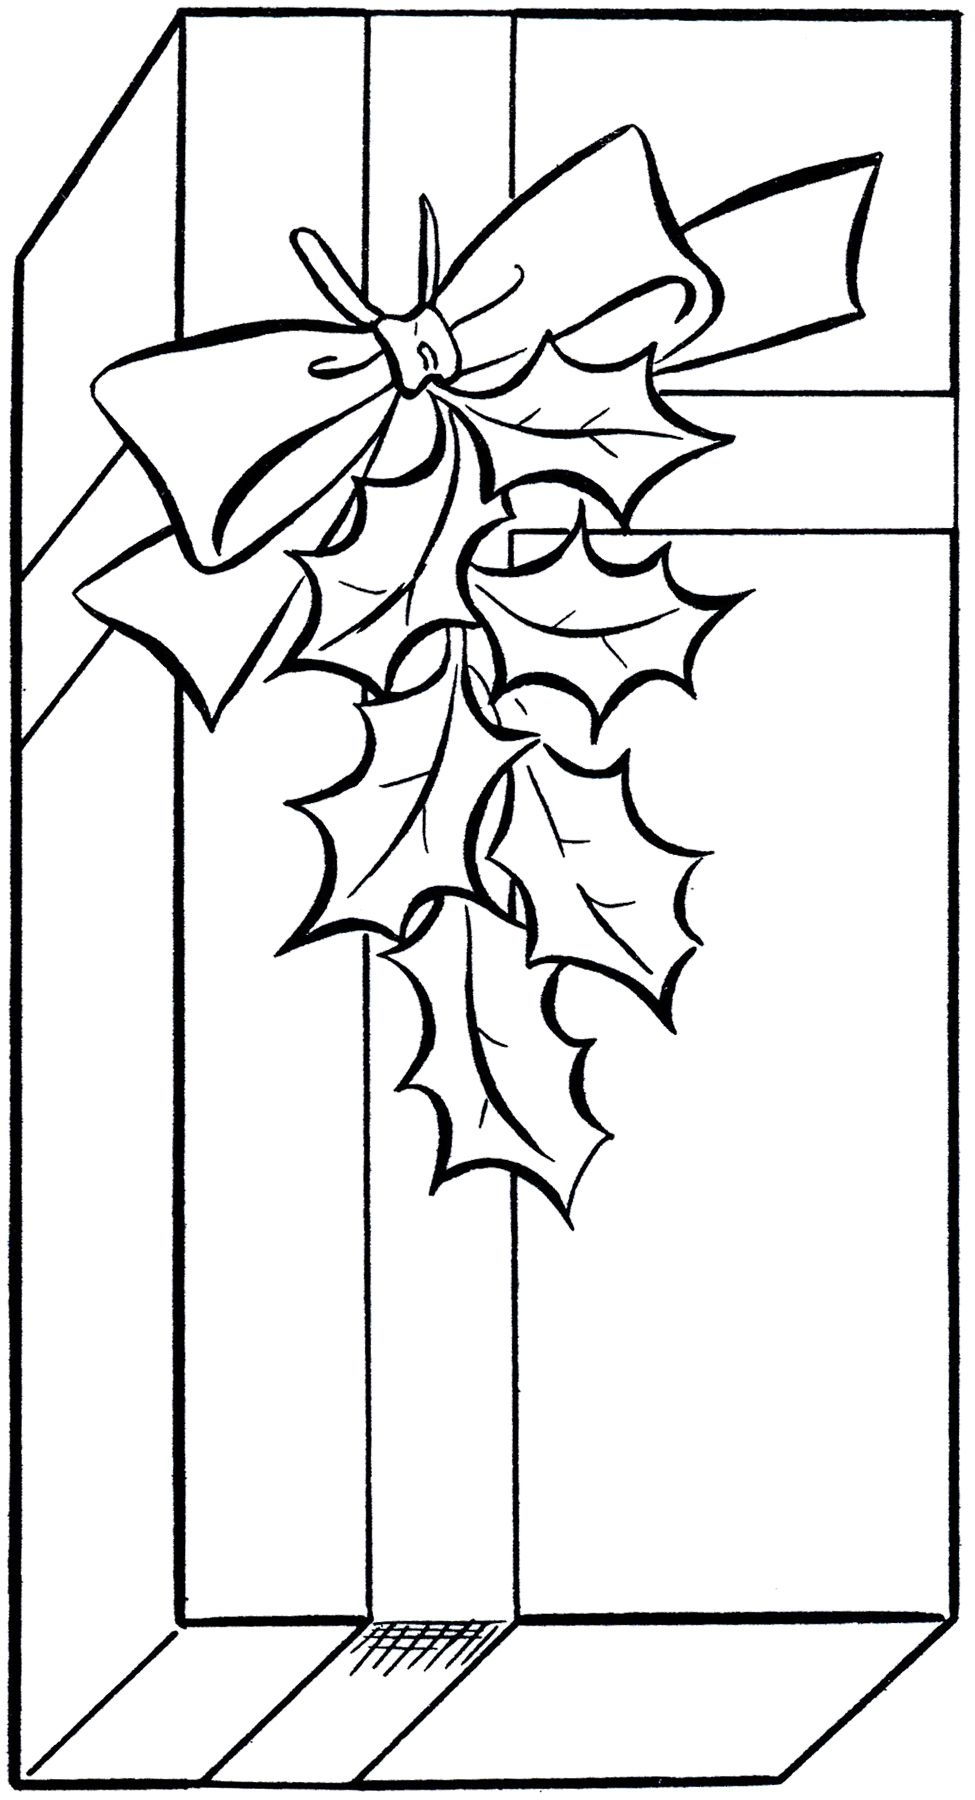 Holiday Gift Clip Art Image Coloring Page! Christmas